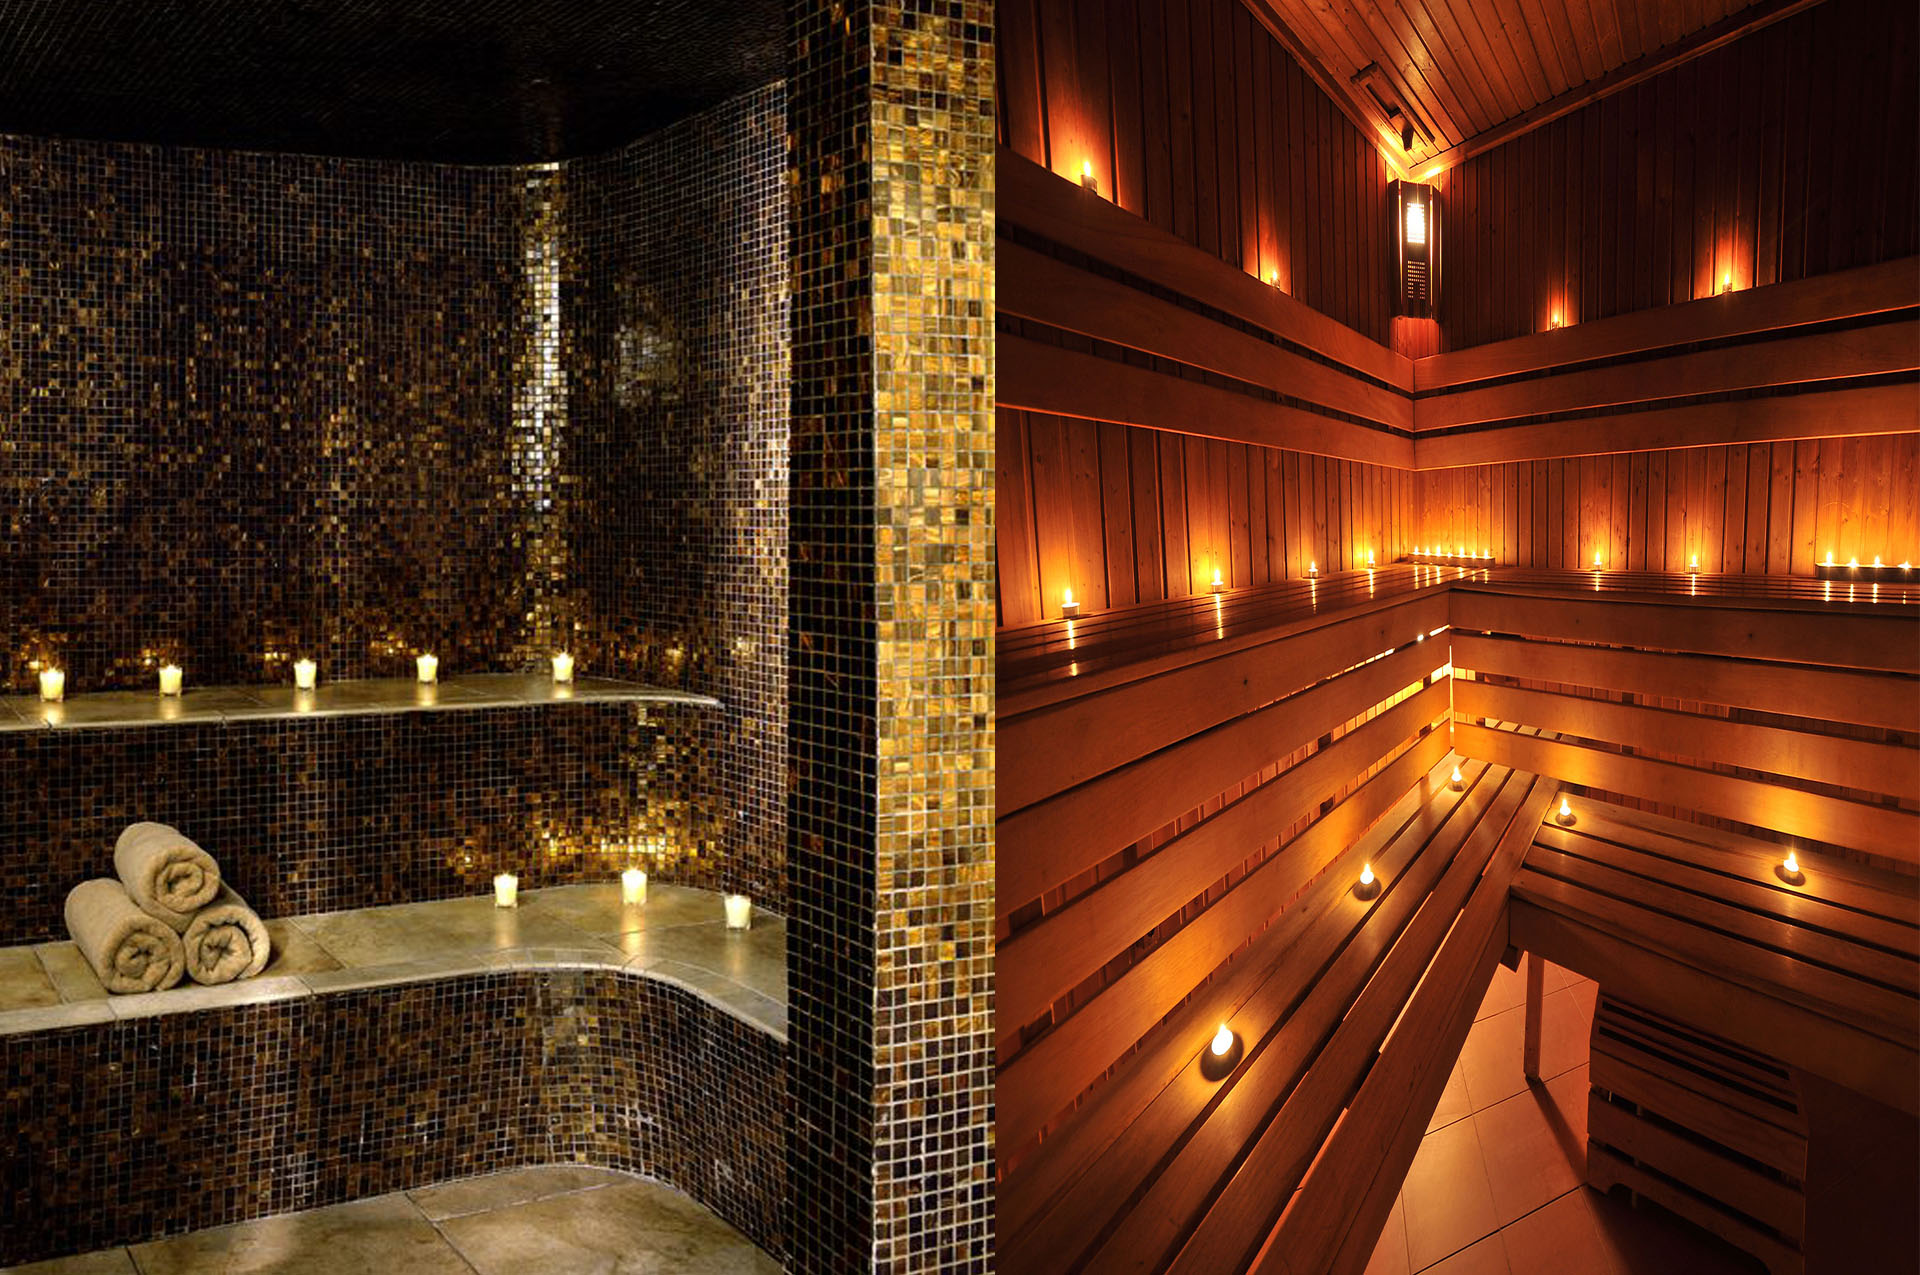 breckenridge spa it for go sauna in room steam redawning property rental vacation